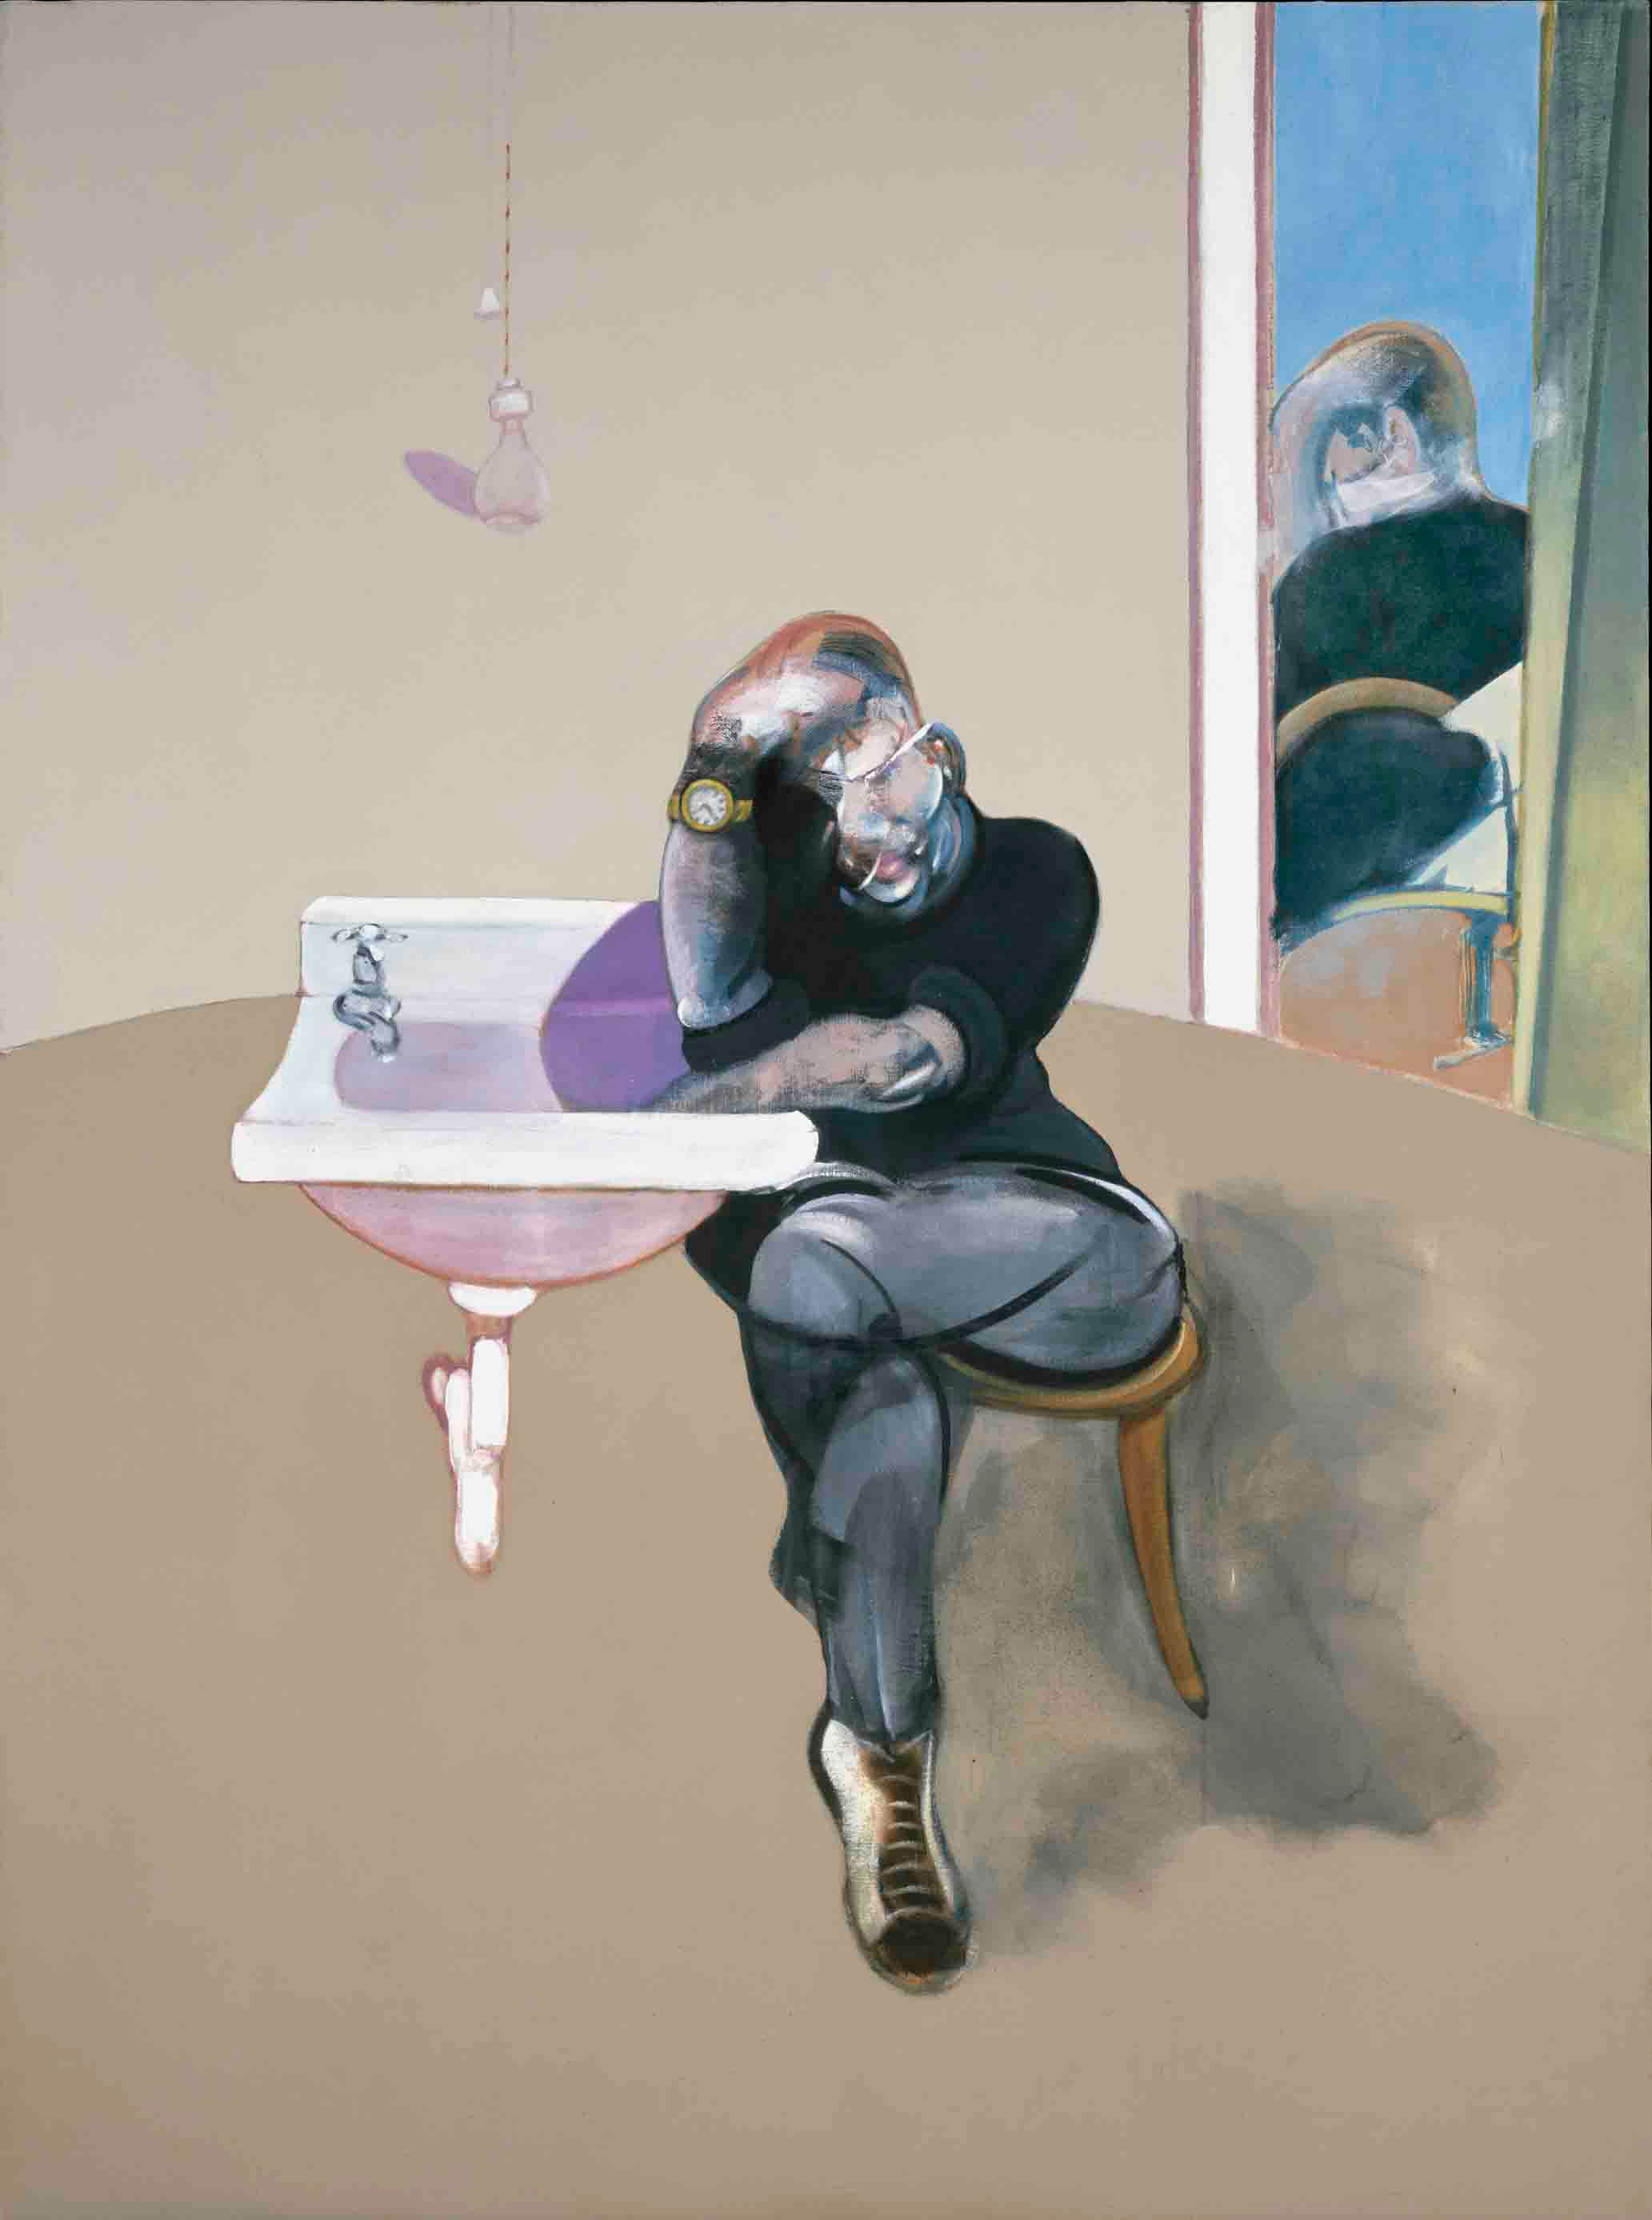 In Defense of Artist, Francis Bacon – Art & criticism by eric wayne